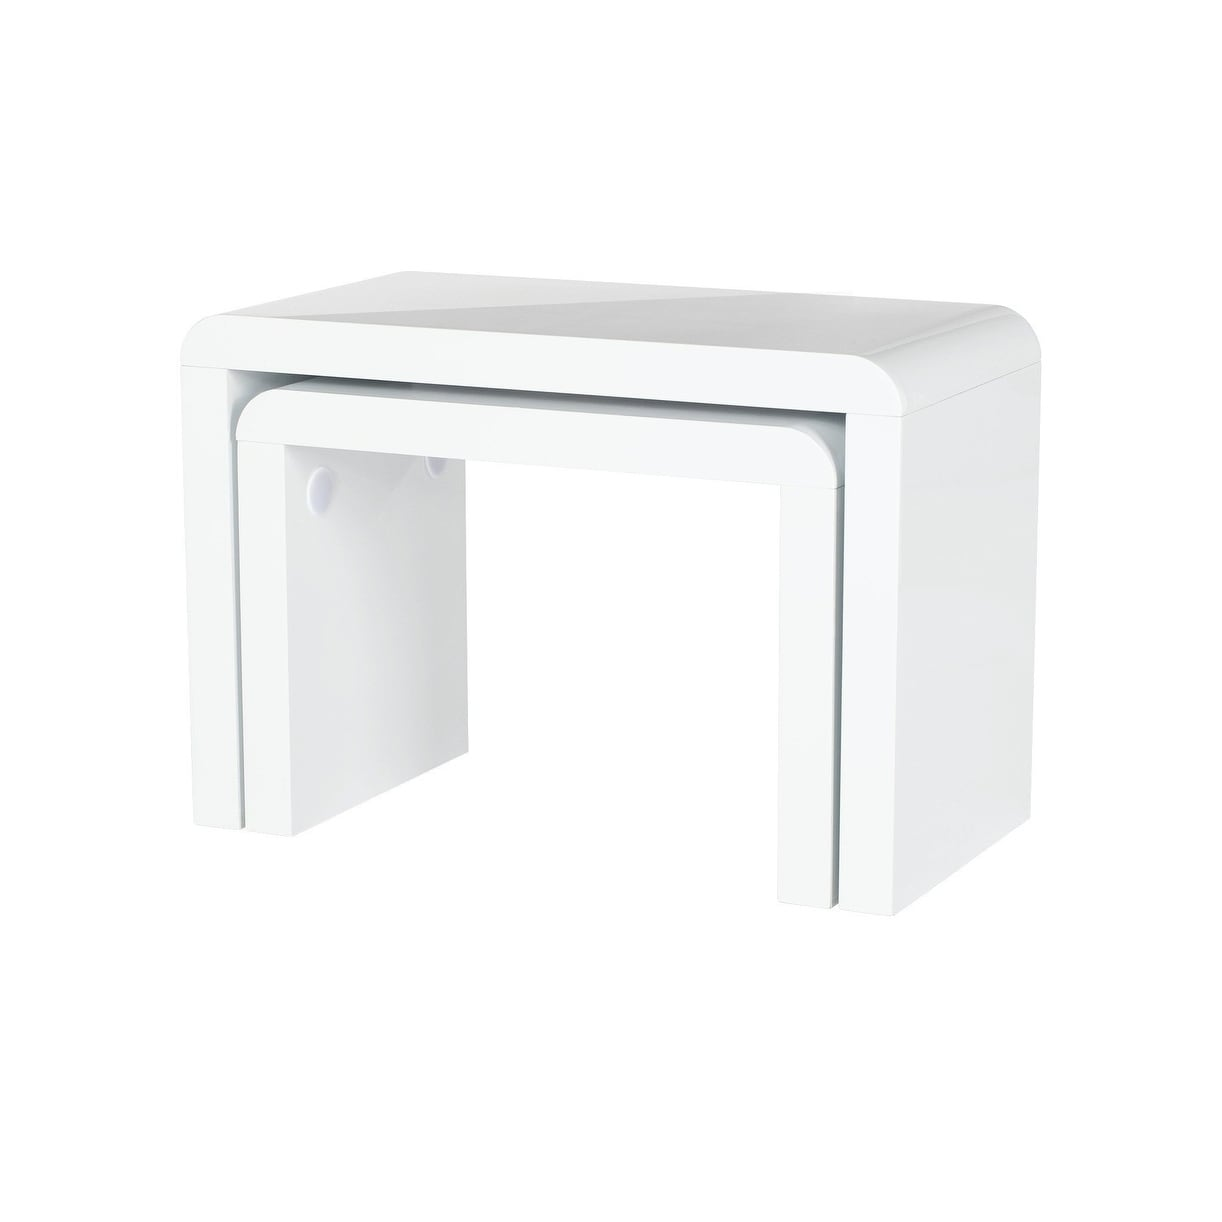 Shop End Table Prana Set Of 2, With Round Edges, White Highgloss Finish    Free Shipping Today   Overstock.com   21153719